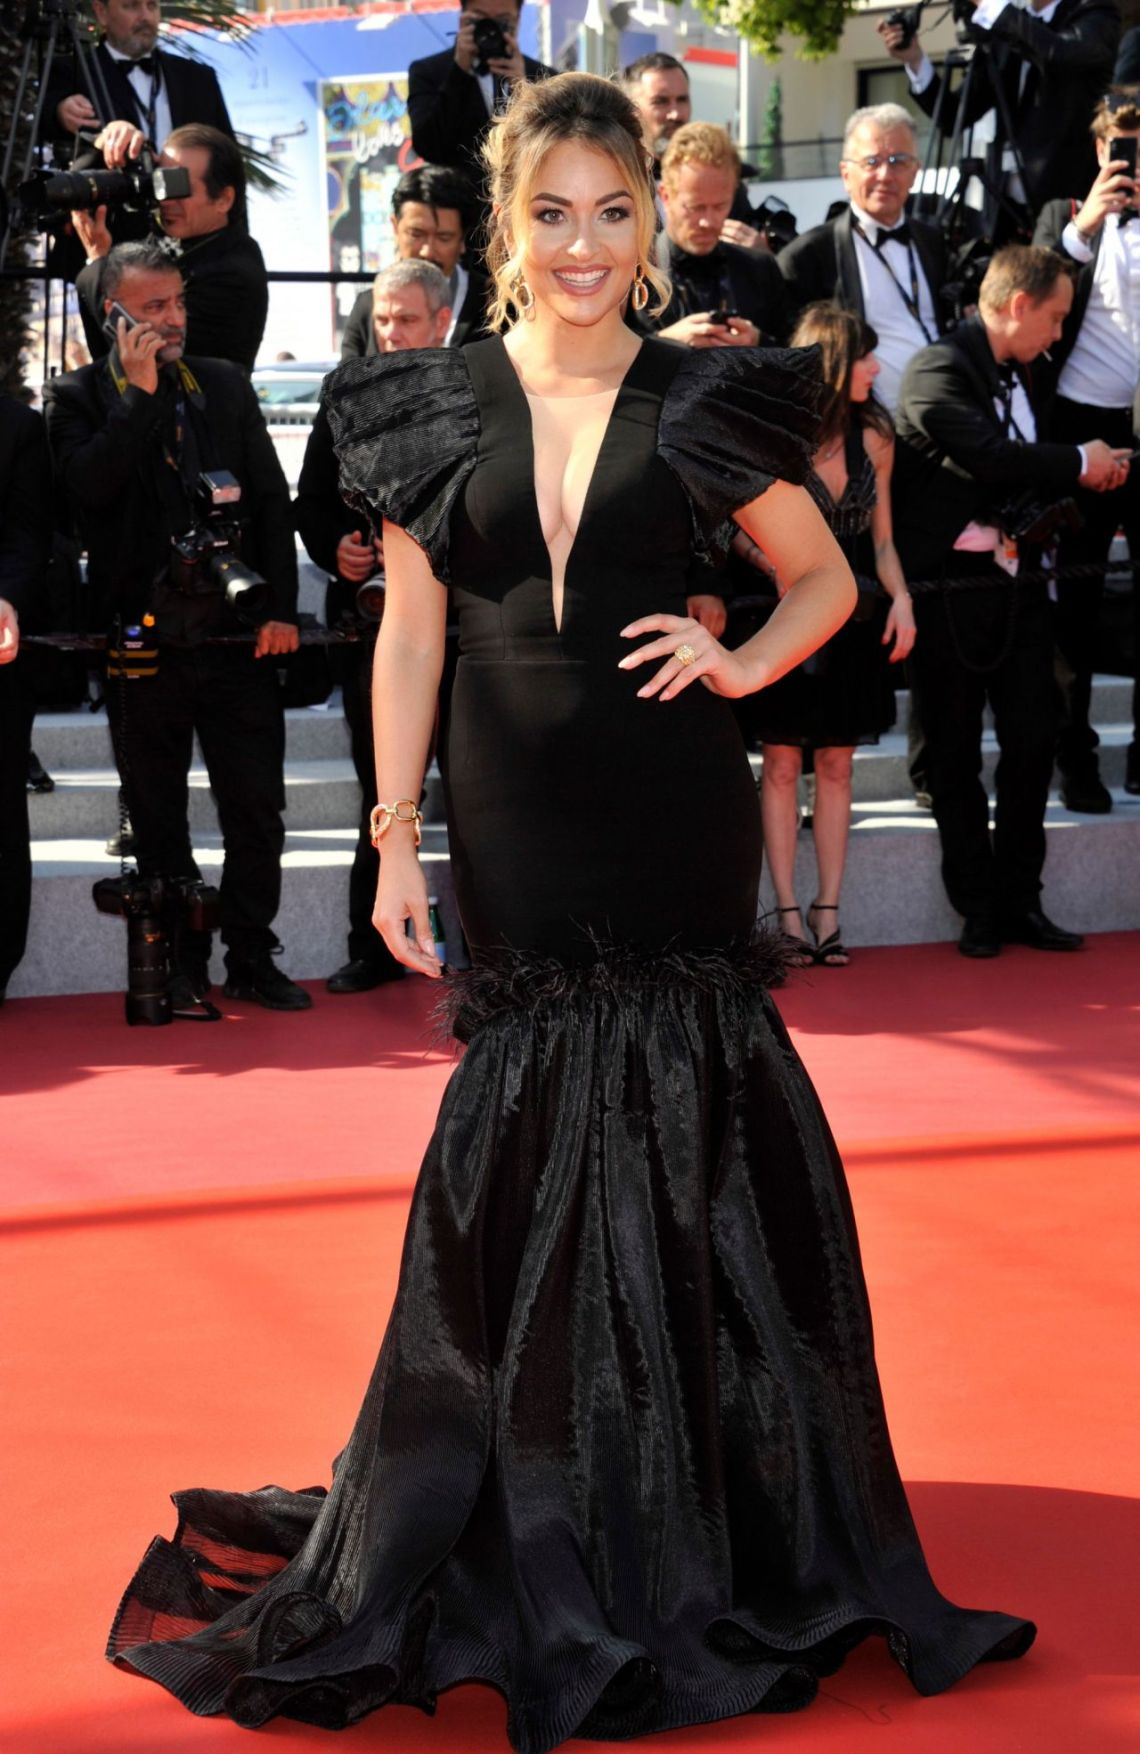 giulia-gaudino-the-traitor-red-carpet-at-cannes-film-festival-6